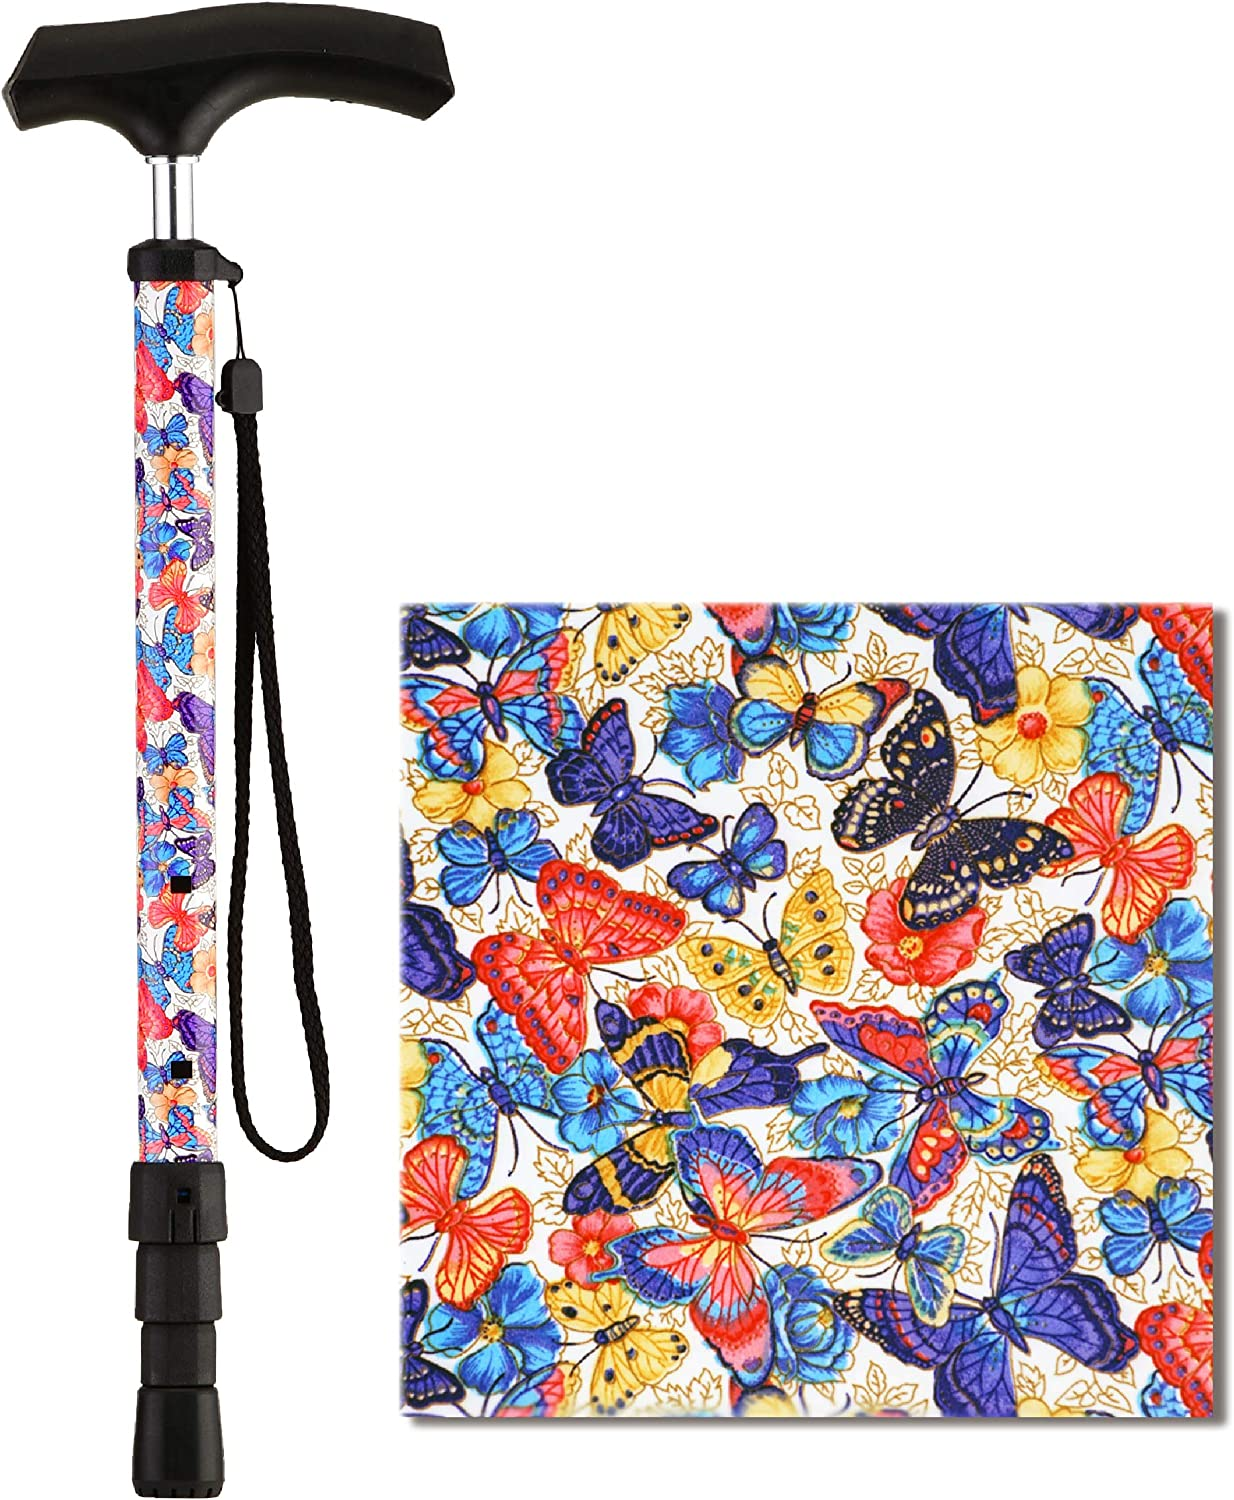 NOVA Compact Travel Our shop most popular Cane with Strap Max 60% OFF Portable Lightw Collapsible